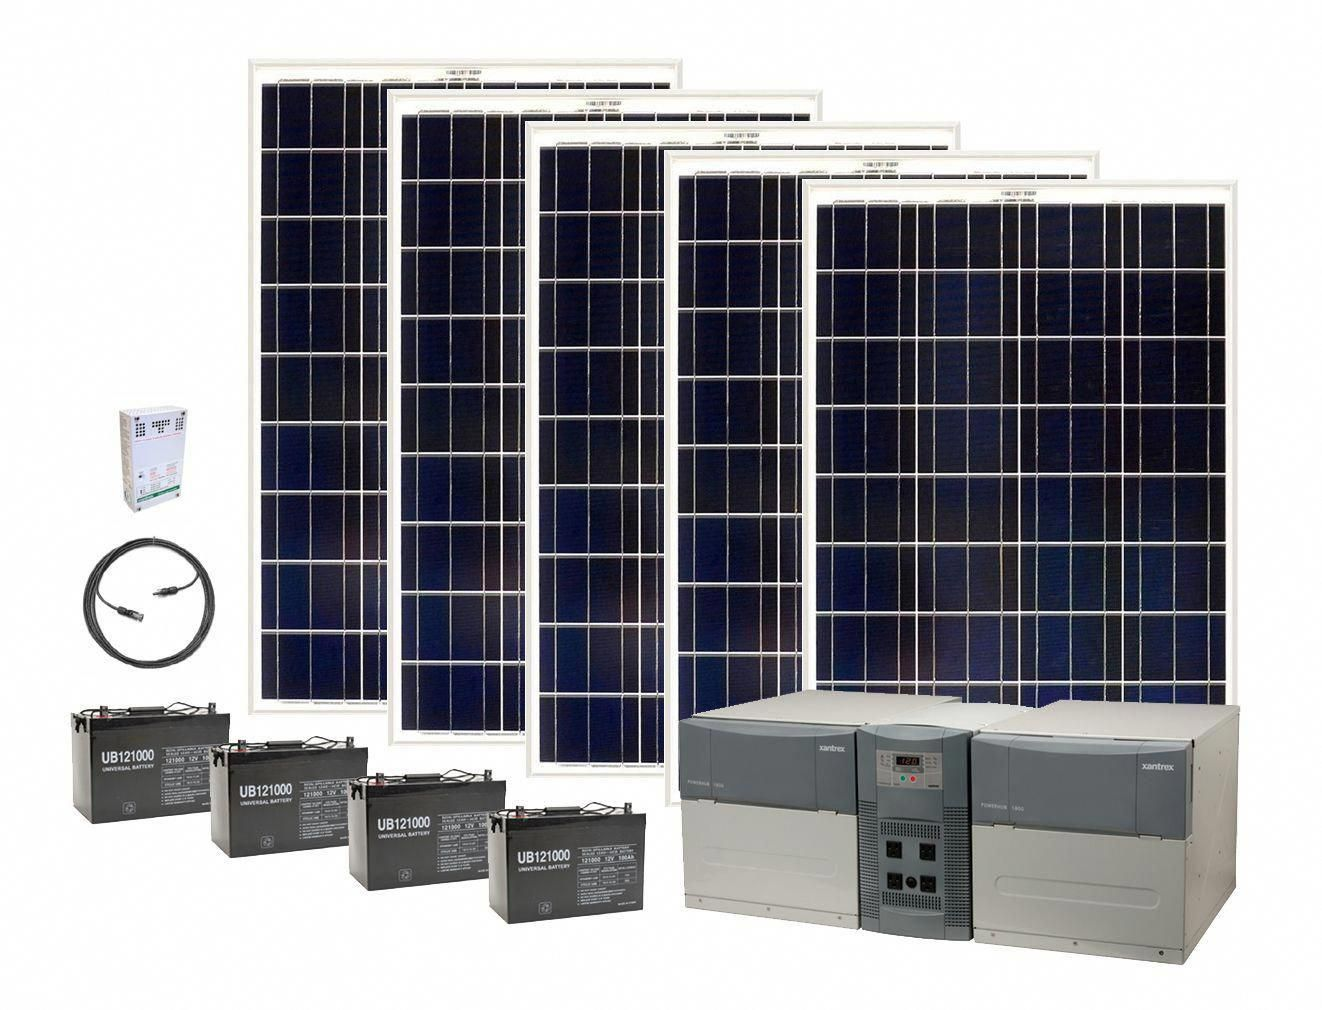 120 Volt Solar Power Generator Kits Earthtech Products Solargenerator Solarpanels Solarenergy Solarpower Solar Solar Power House Solar Panels Solar Heating